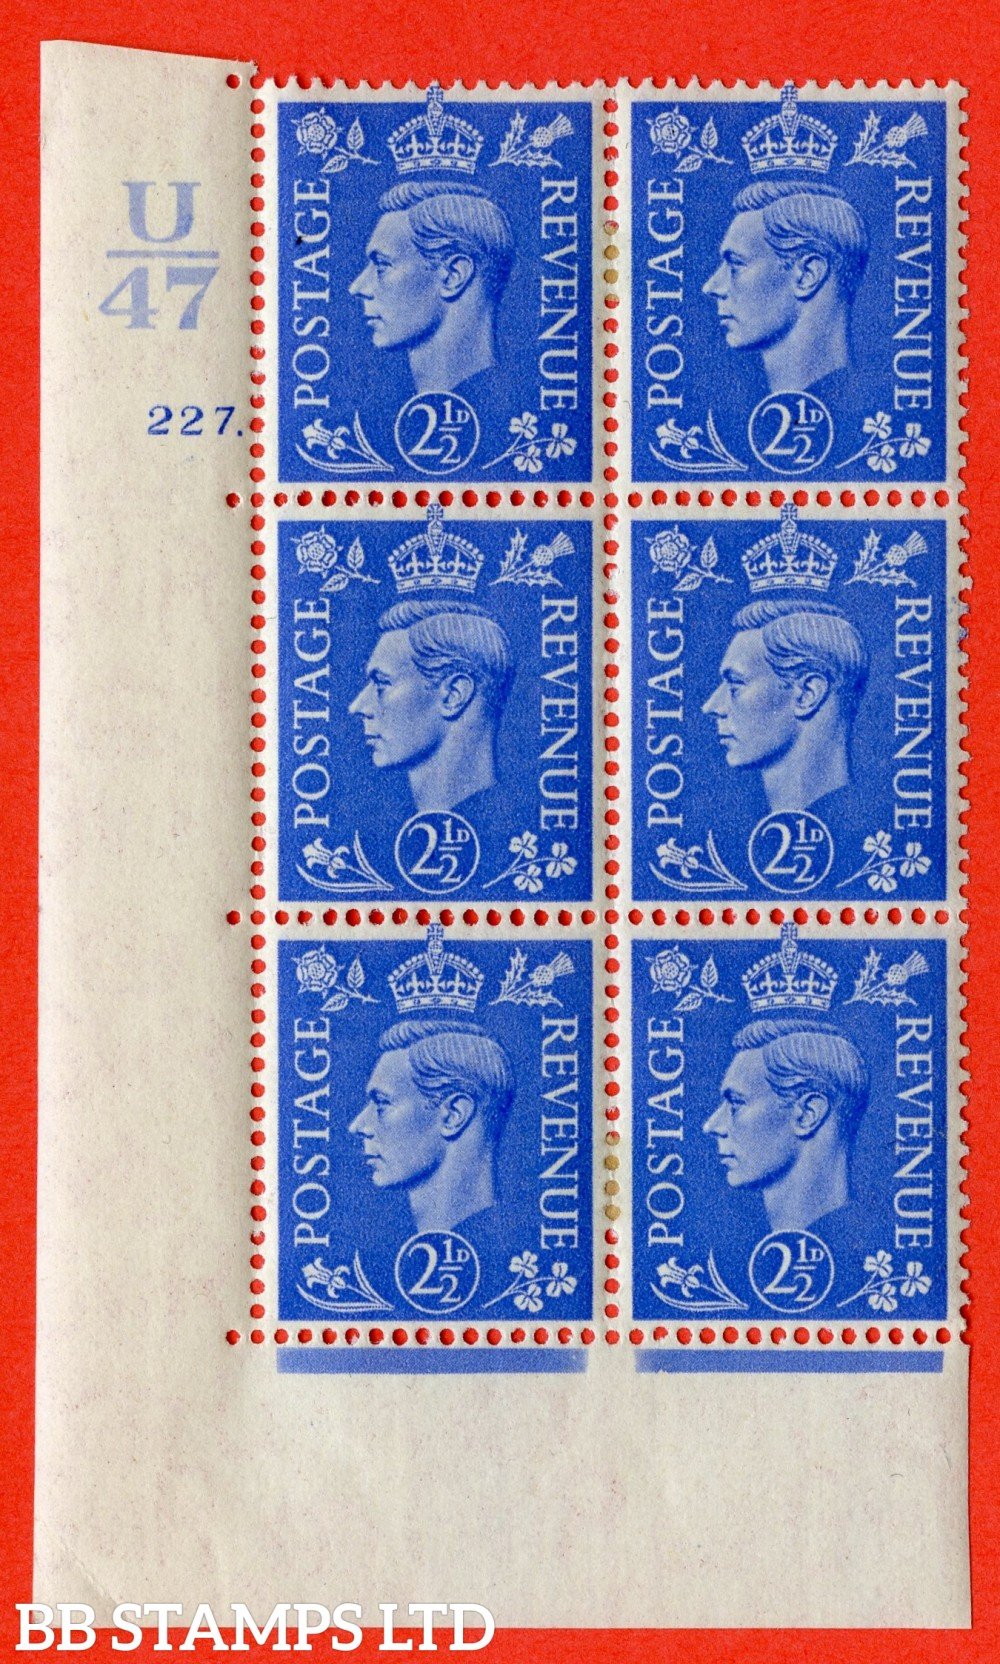 """SG. 489. Q14. 2½d Light ultramarine. A very fine lightly mounted mint """"  Control U47 cylinder 227 dot """" control block of 6 with perf type 5 E/I."""